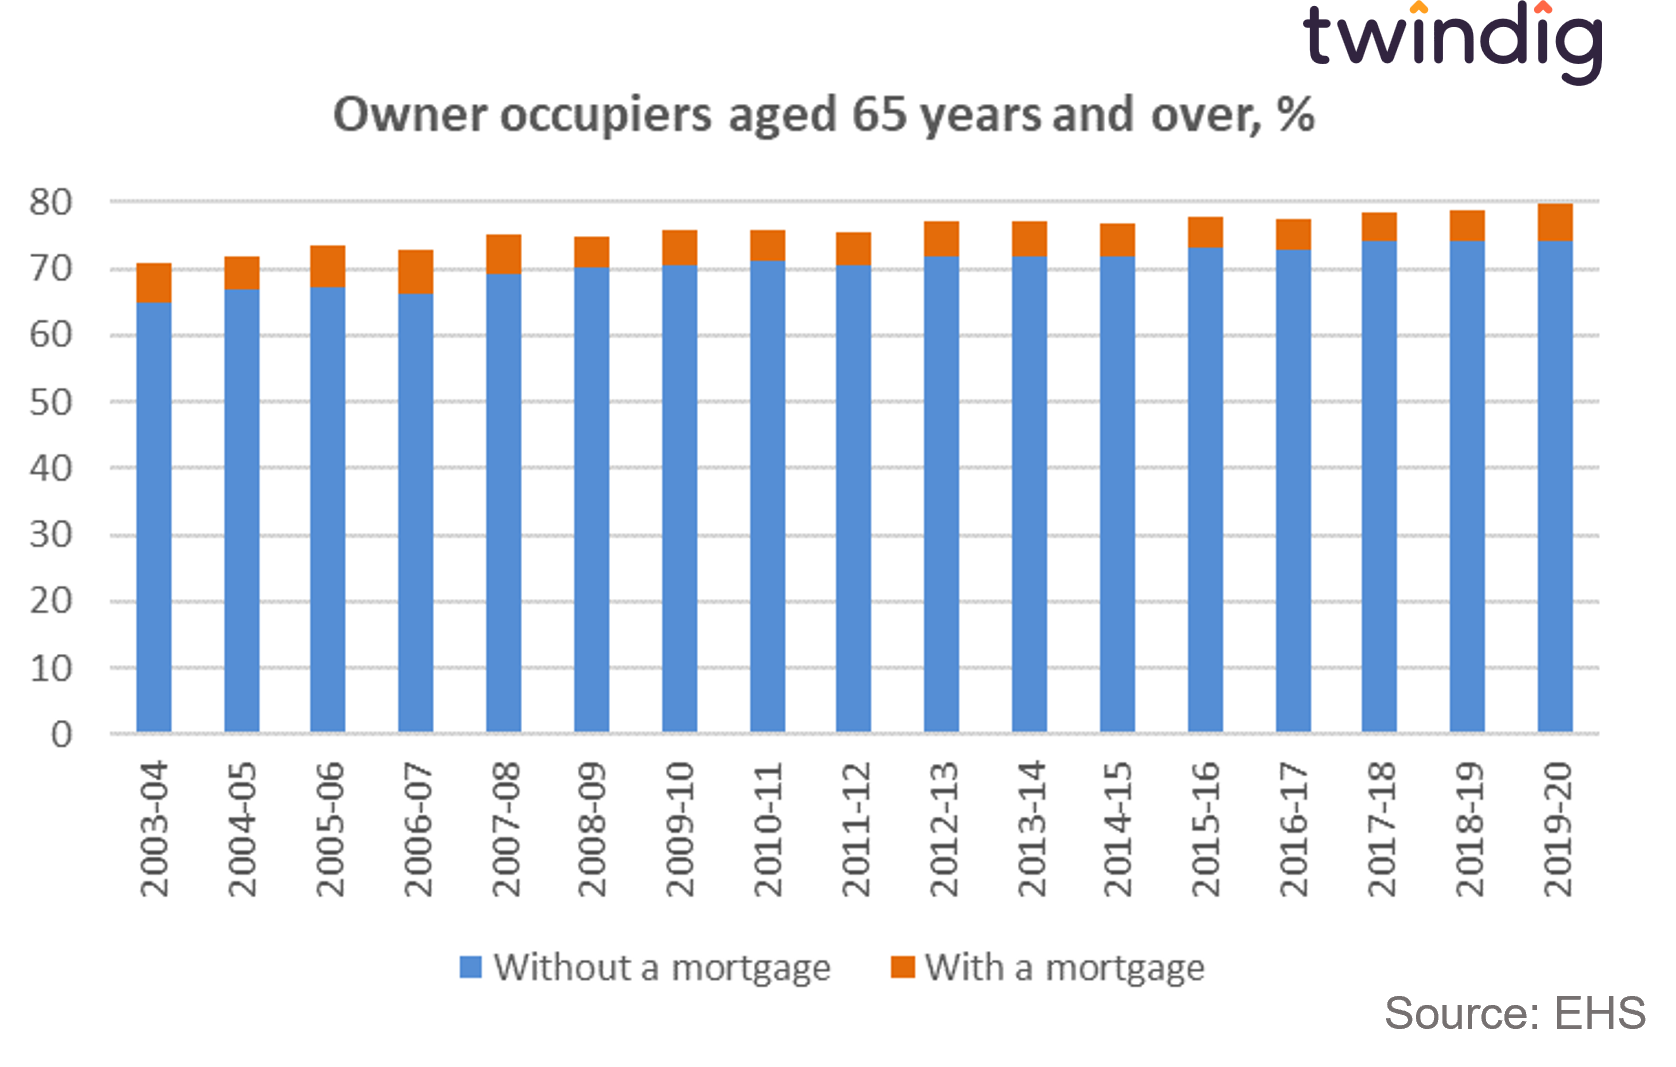 graph chart showing homeownership with and without a mortgage for those aged 65 years and older twindig anthony codling